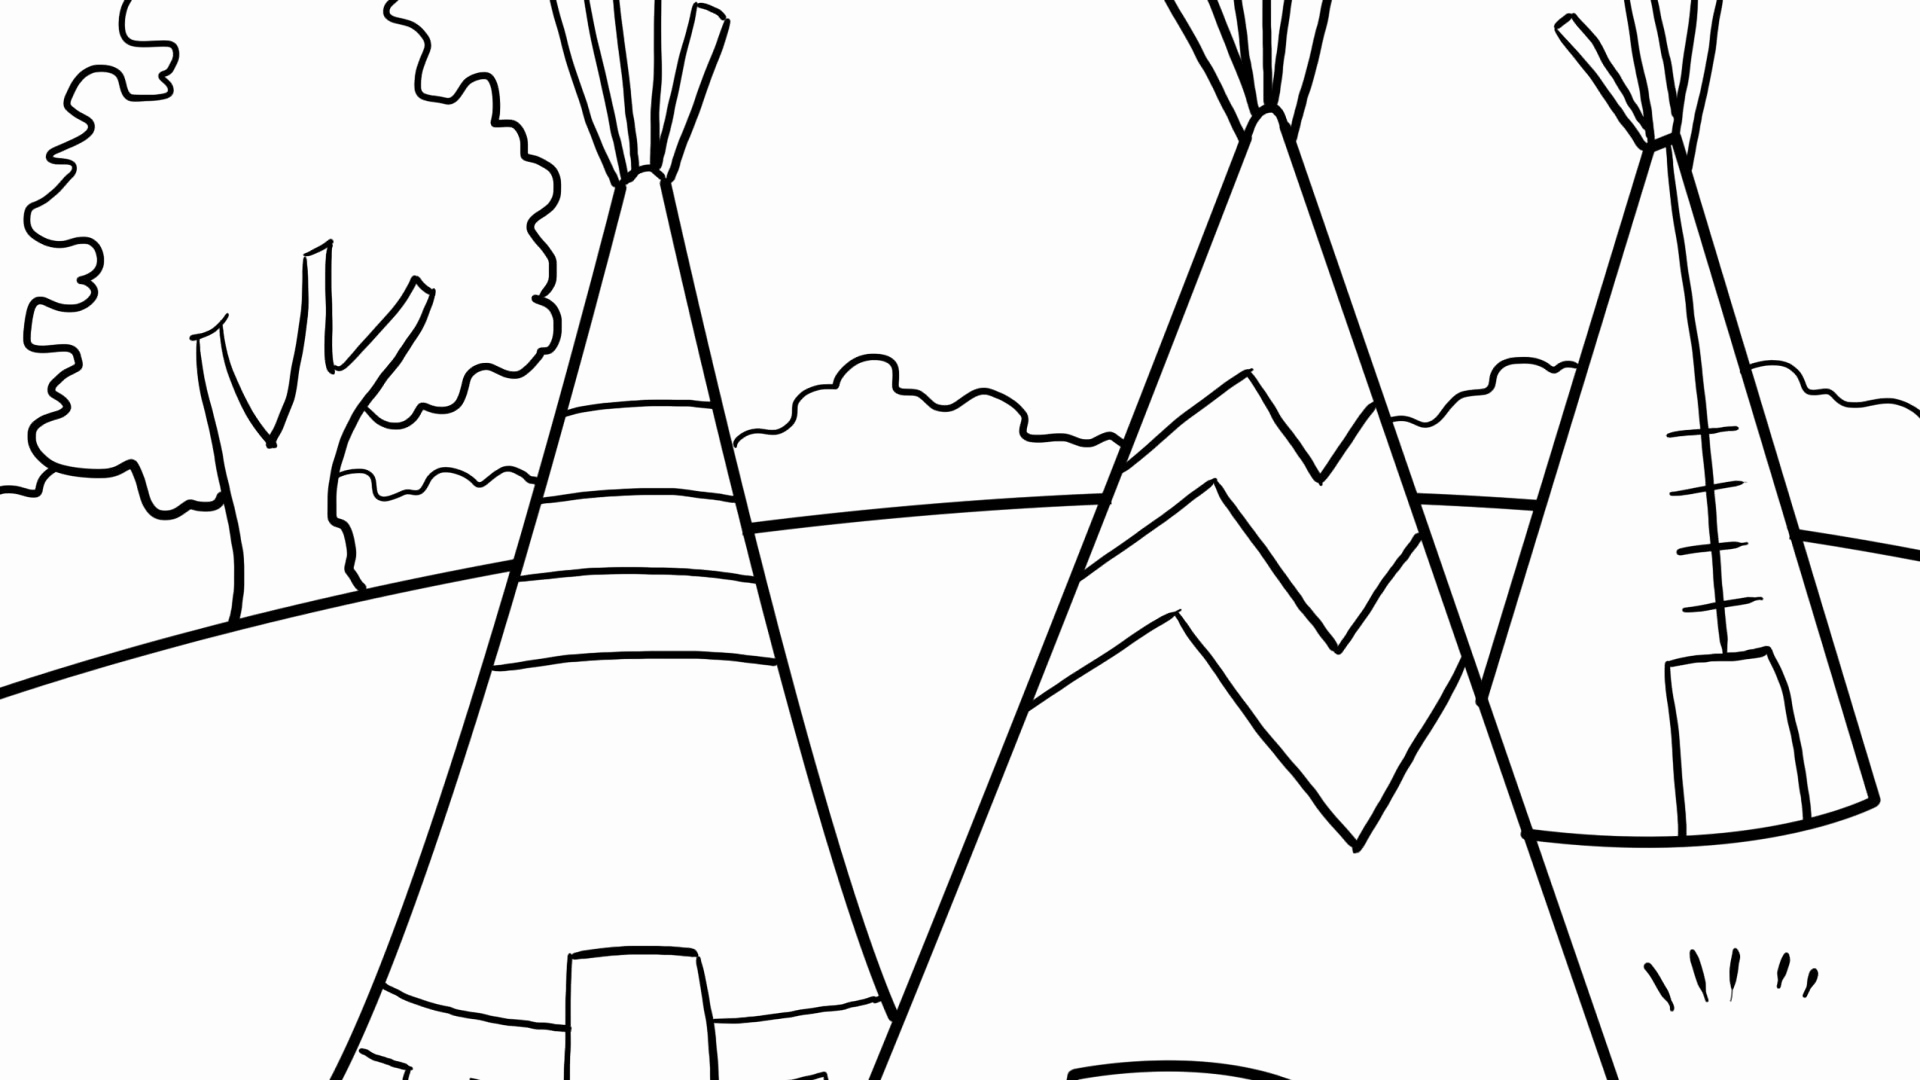 1920x1080 Texas Coloring Pages Luxury Texas Map Coloring Page Many Map Dubai